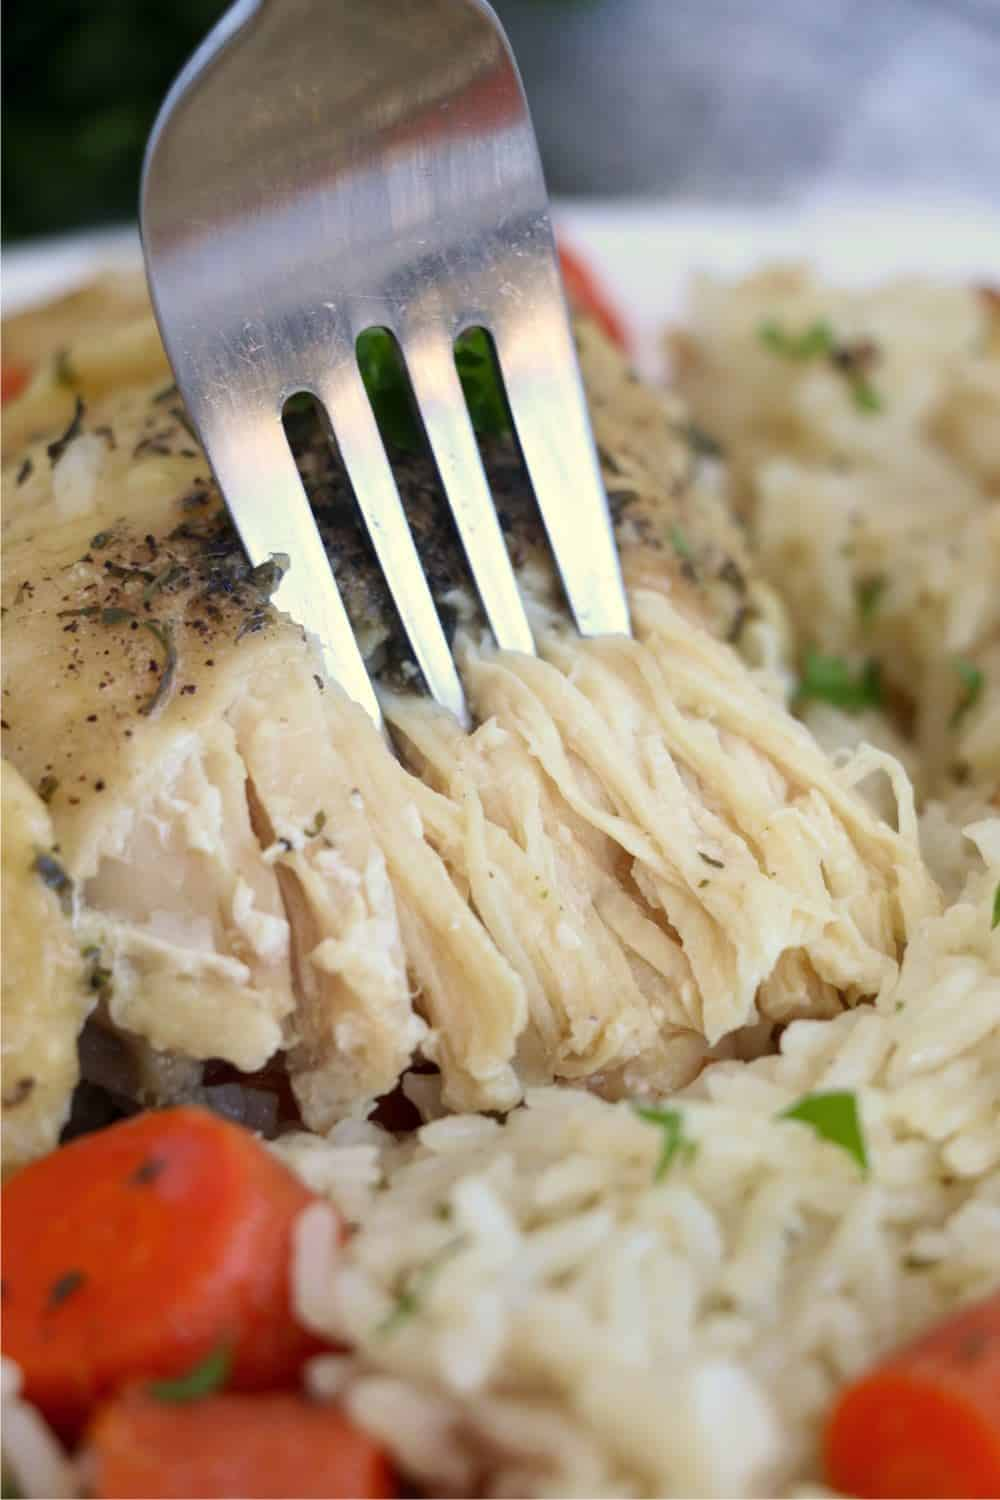 A close-up photo of a fork lifting a bite of chicken cooked in an Instant Pot